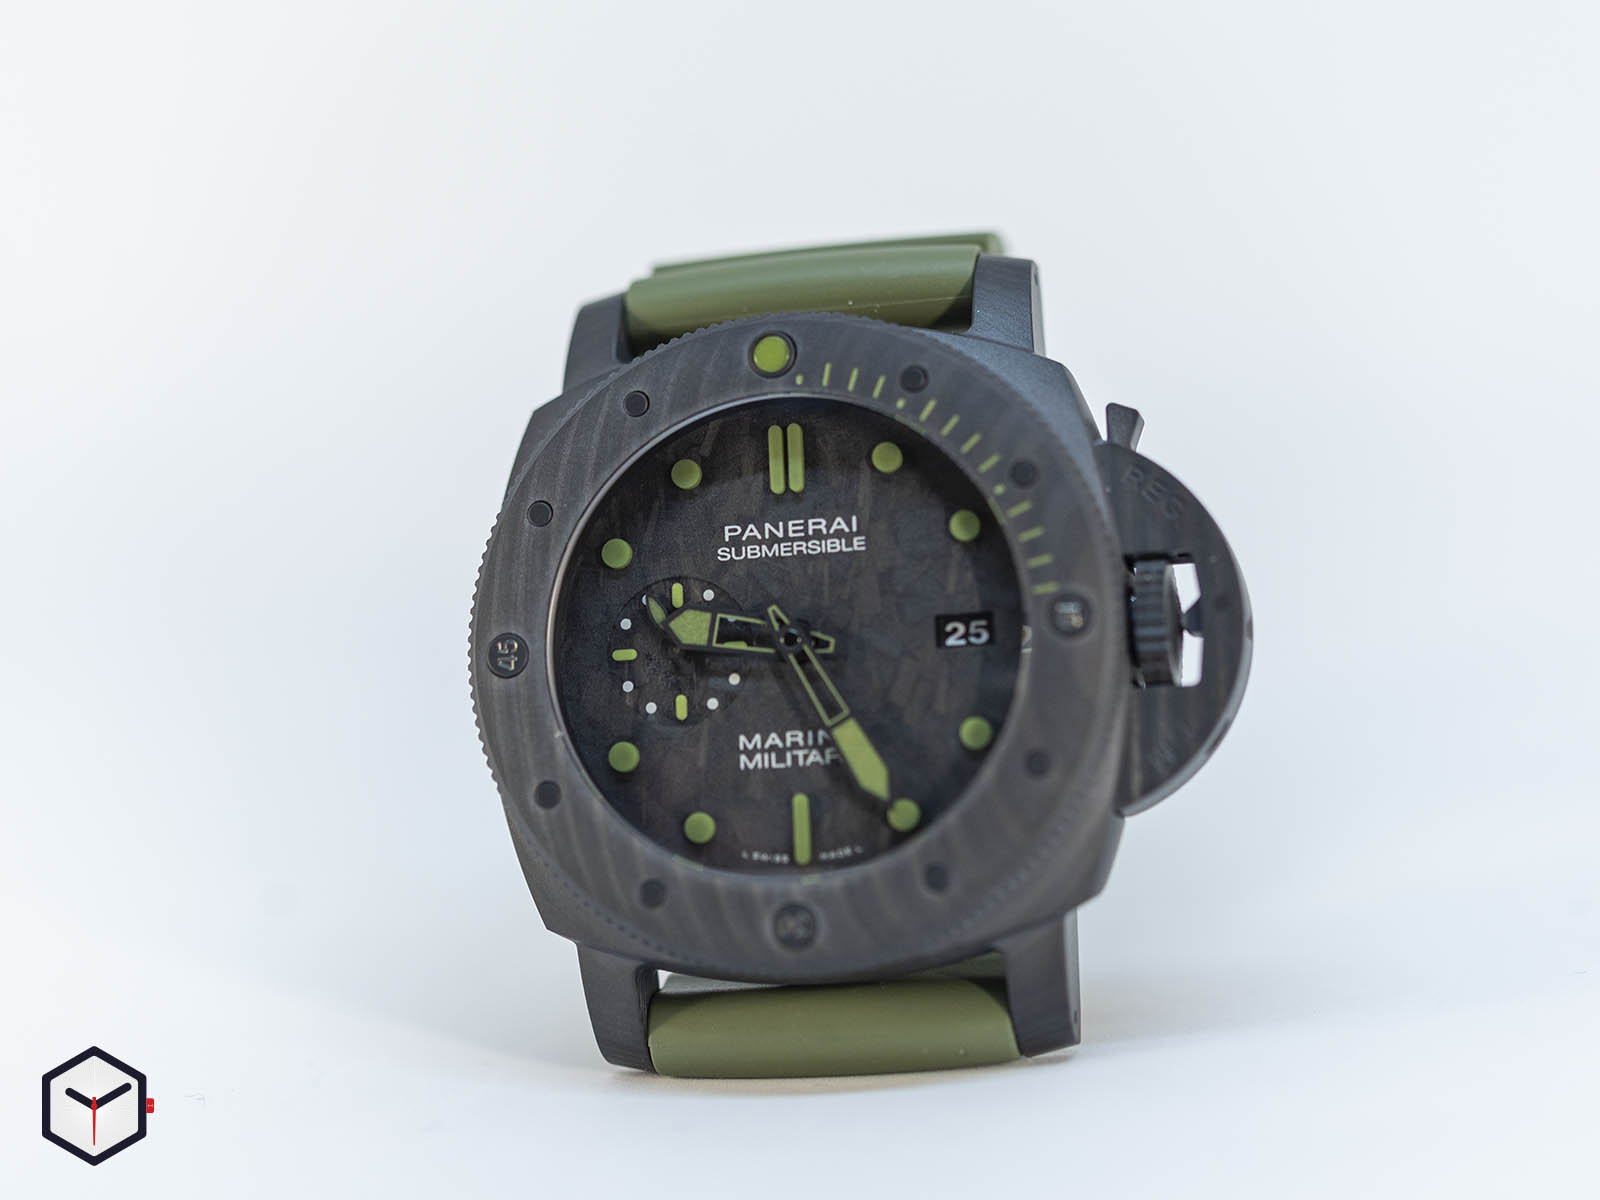 pam00961-officine-panerai-submersible-marina-militare-carbotech-47mm-sihh-2019-1.jpg